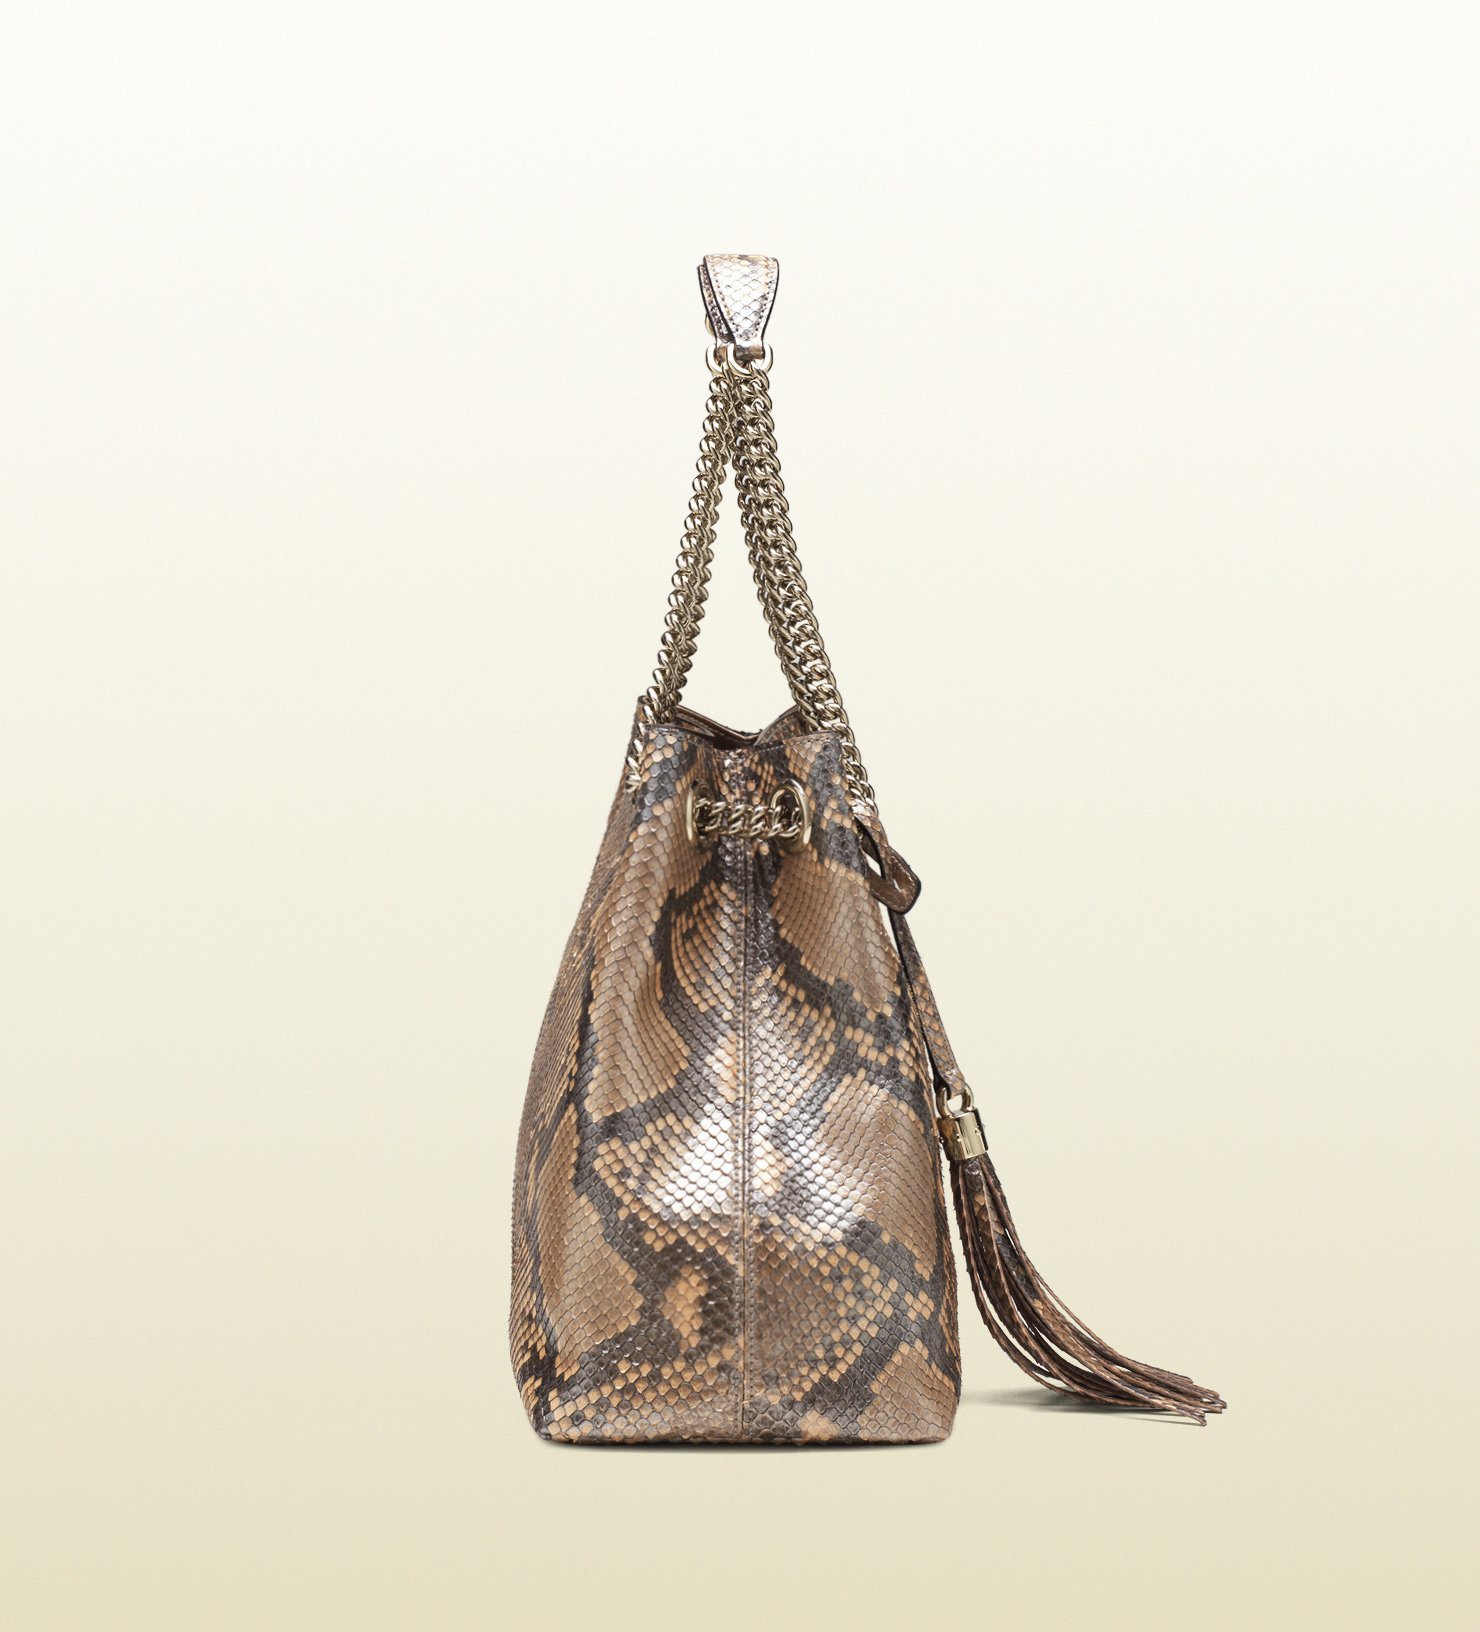 4e70ac98f Gucci Soho Metallic Python Shoulder Bag in Brown - Lyst